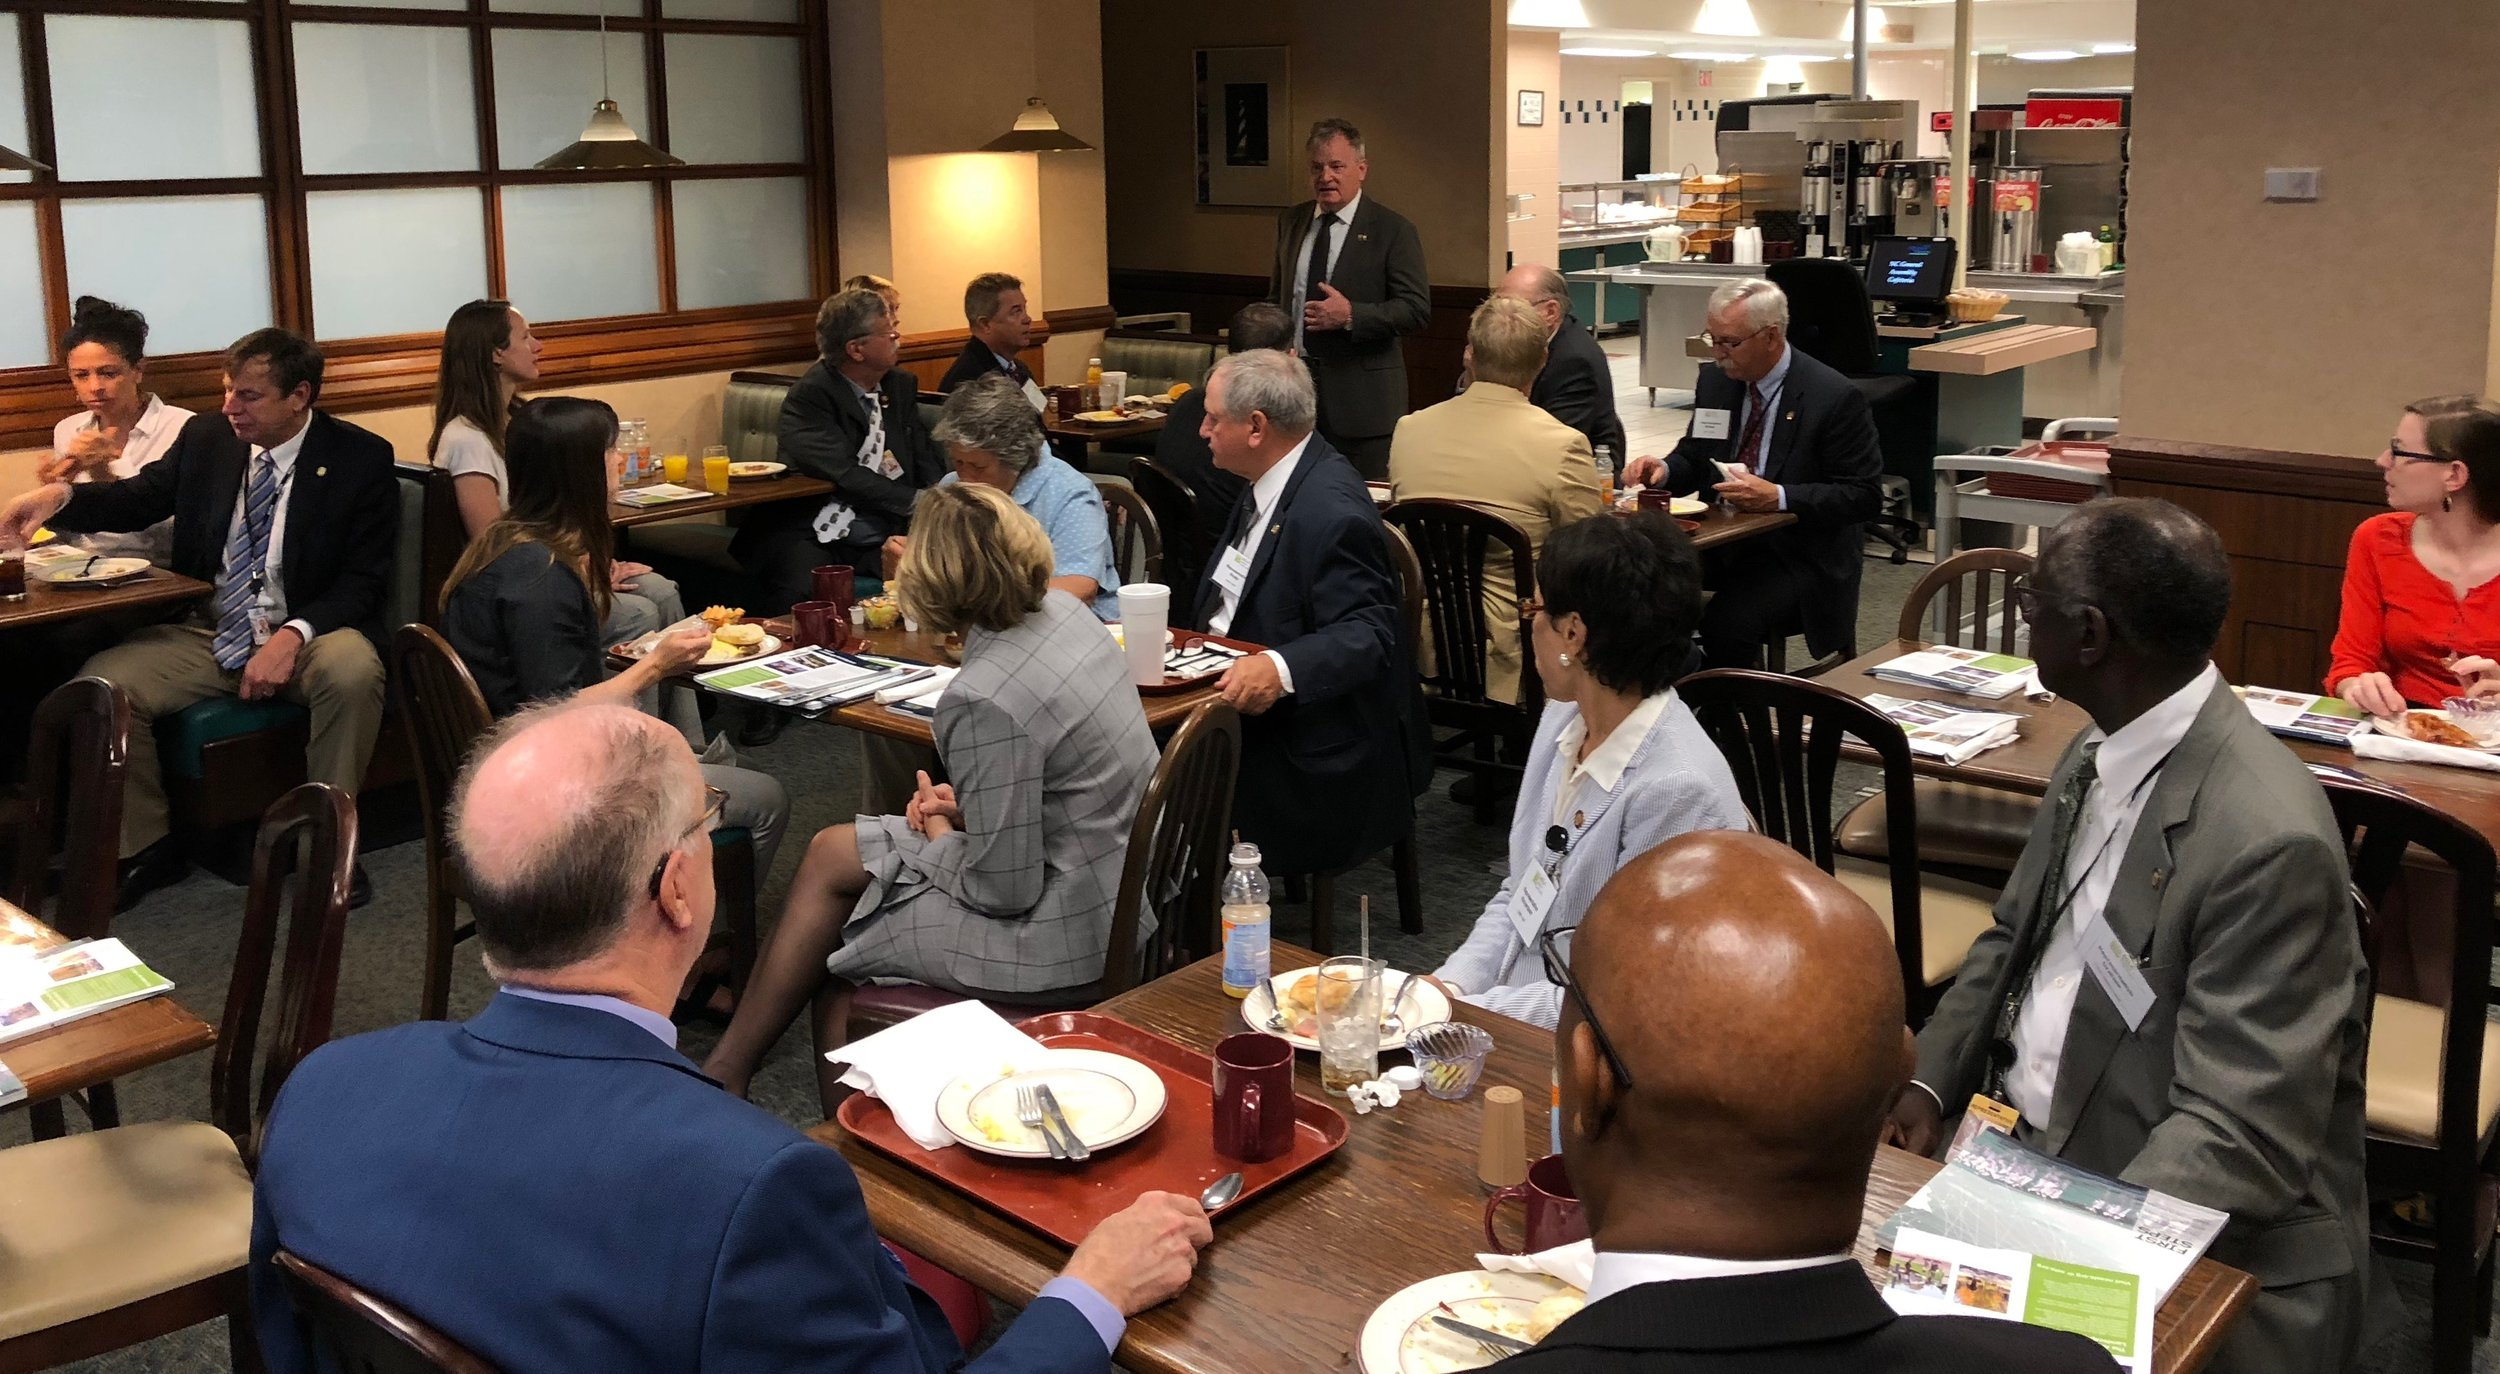 North Carolina Treasurer Dale R. Folwell, CPA shared his appreciation for our profession and a few words about how our industry interacts with the different levels of government.